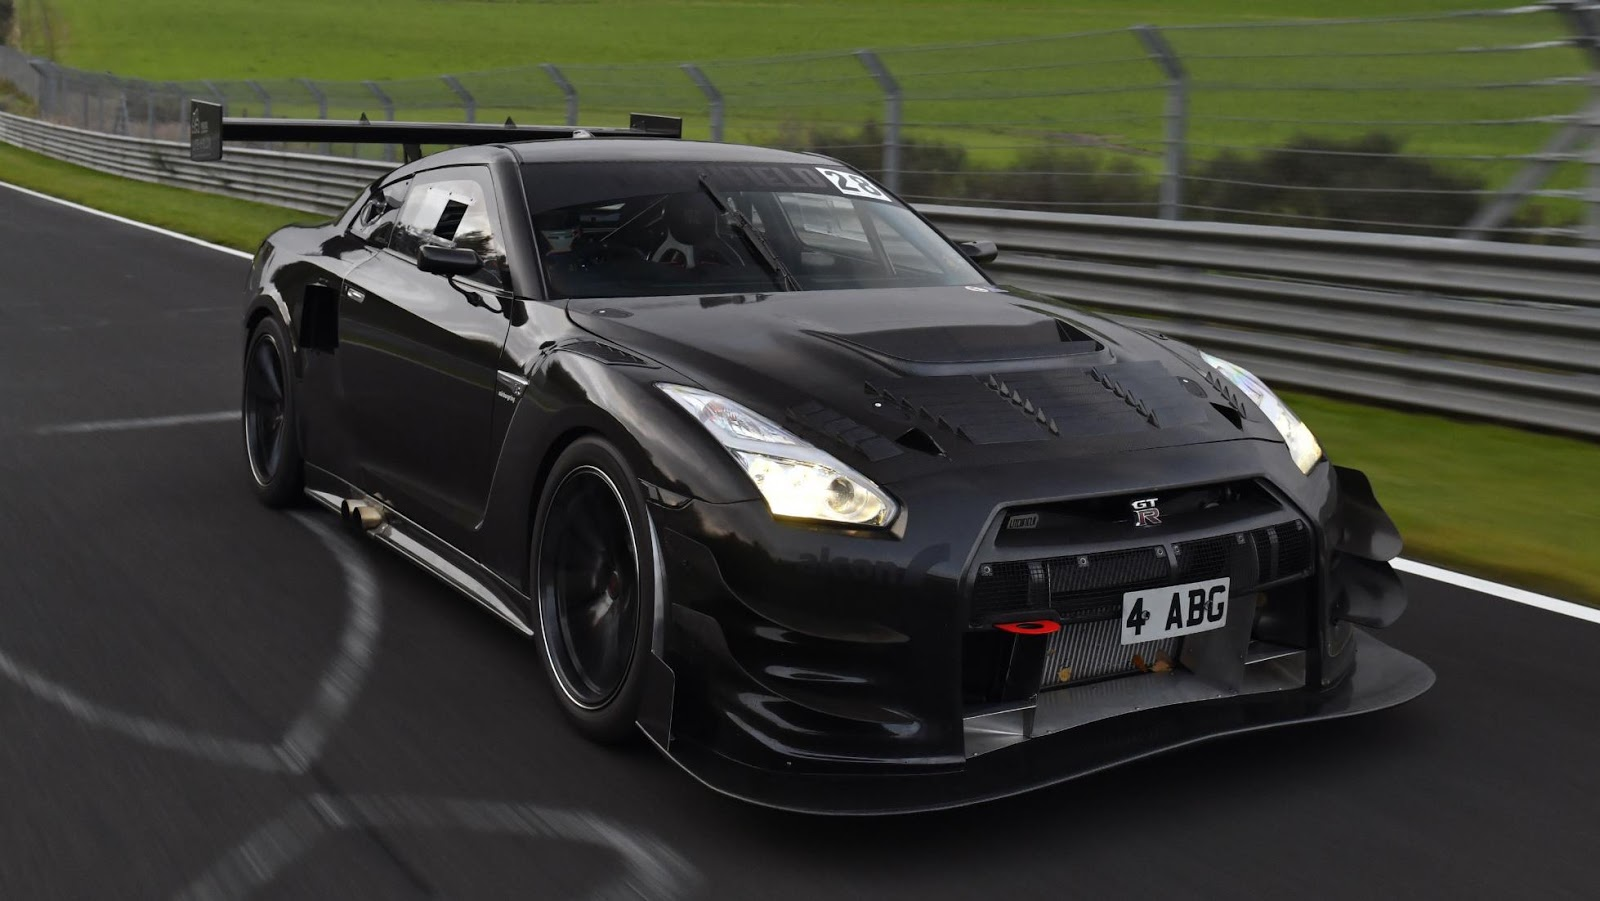 Patrol Nismo >> 1,100 HP Nissan GT-R Will Attempt Nurburgring Record Next Year